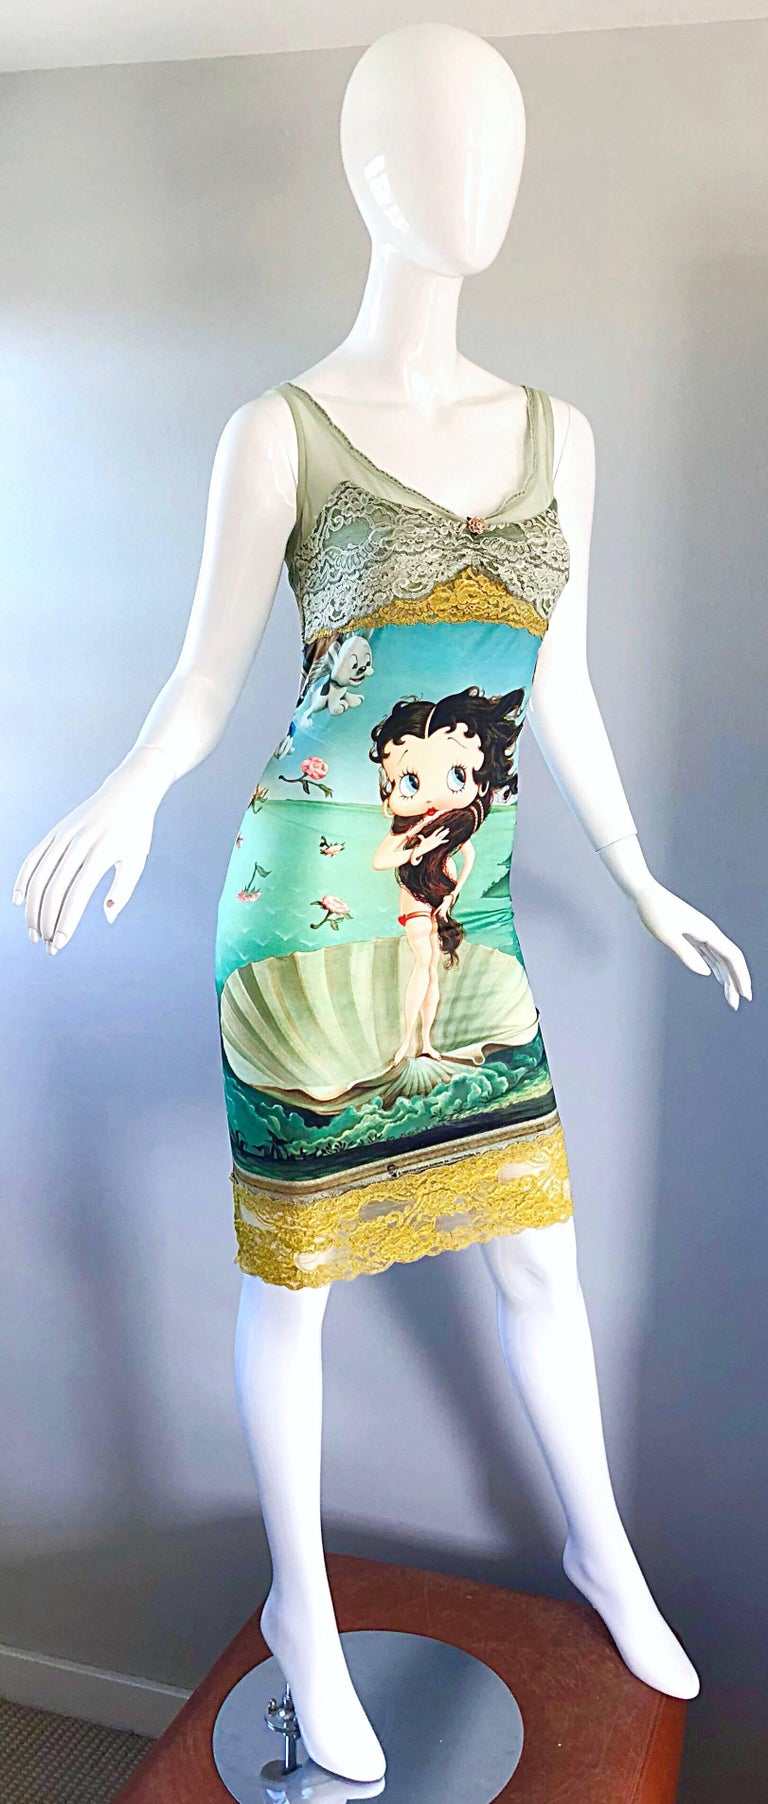 Vintage Eletra Casadei 90s Size Large Betty Boop Birth of Venus Novelty Dress For Sale 2